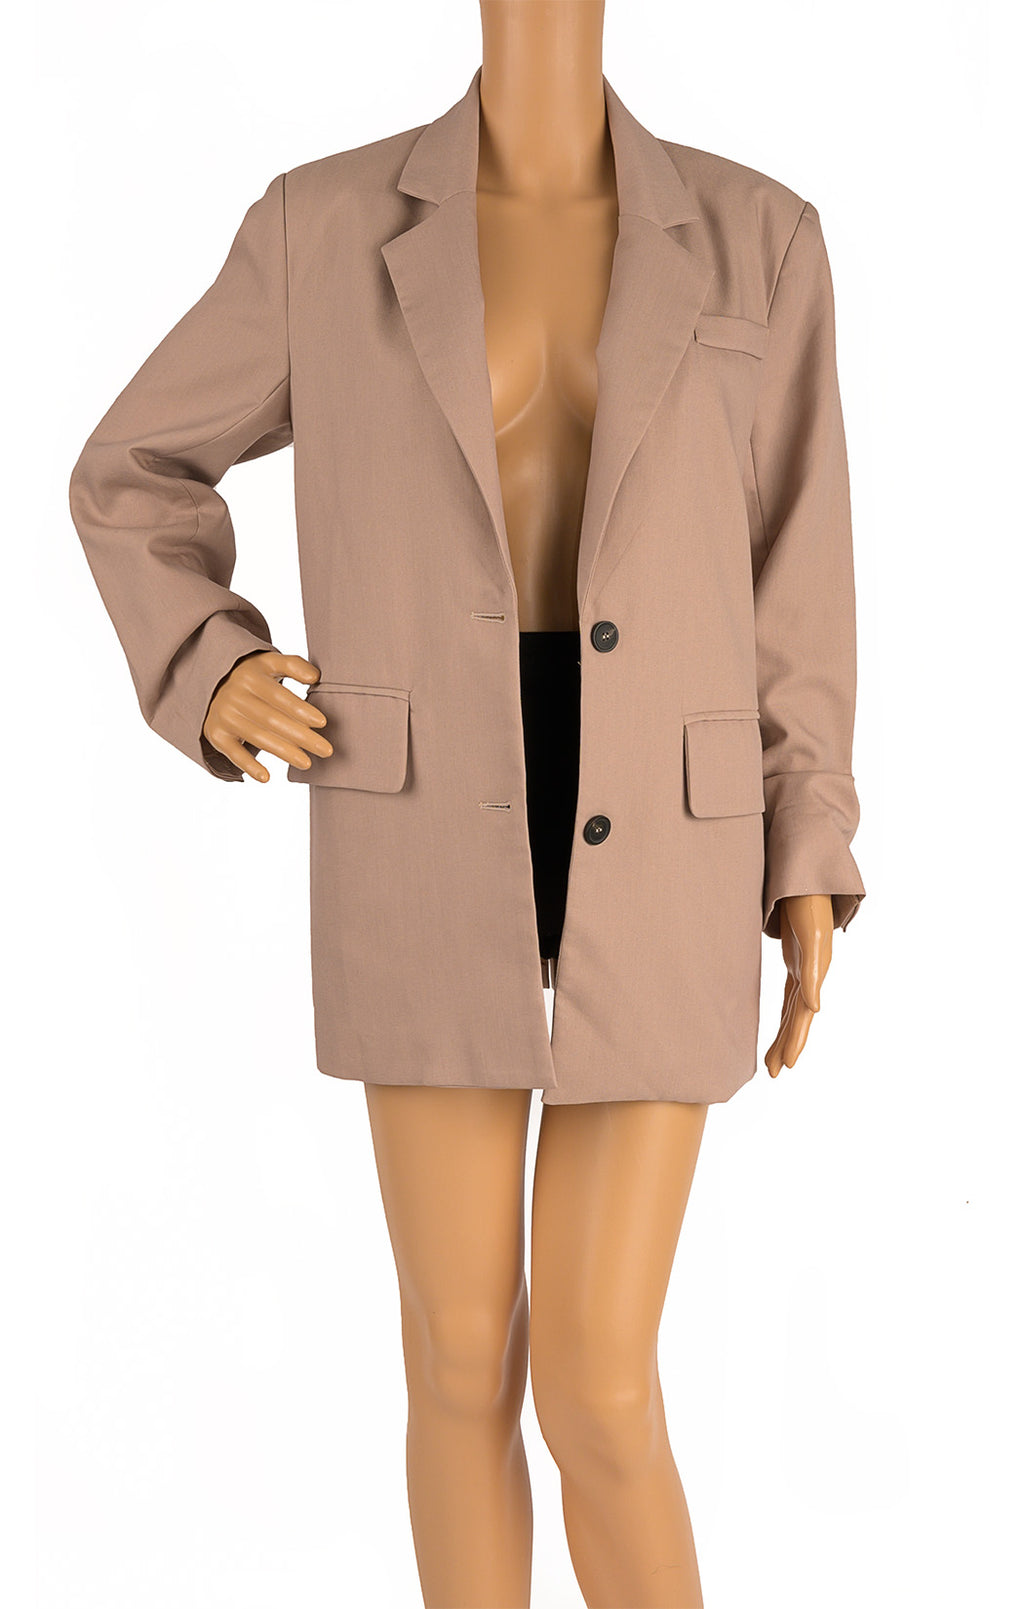 Front view of STYLE ADDICT Blazer Size: Medium